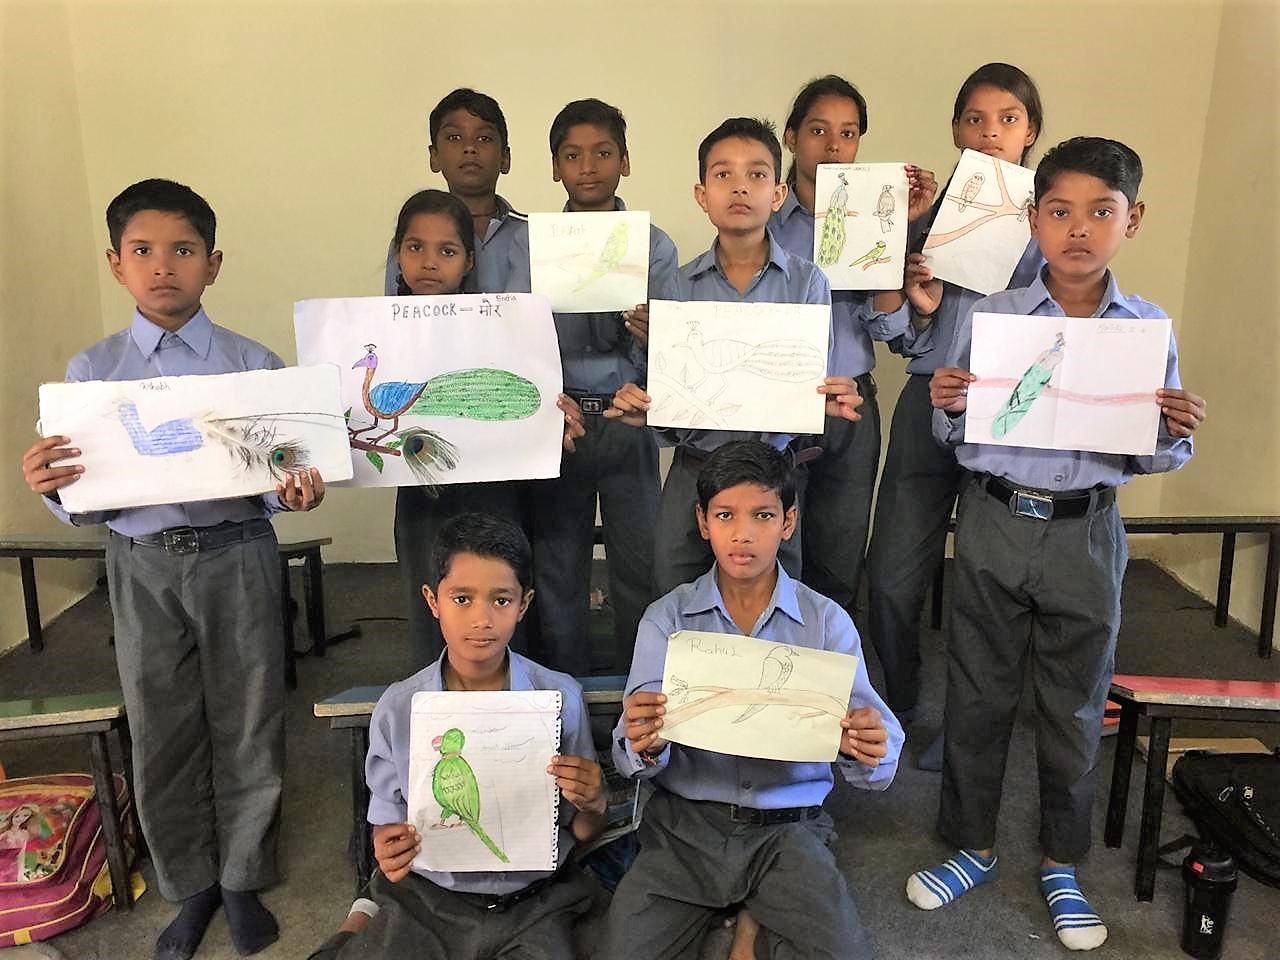 sketch drawings of birds -grade 3 students